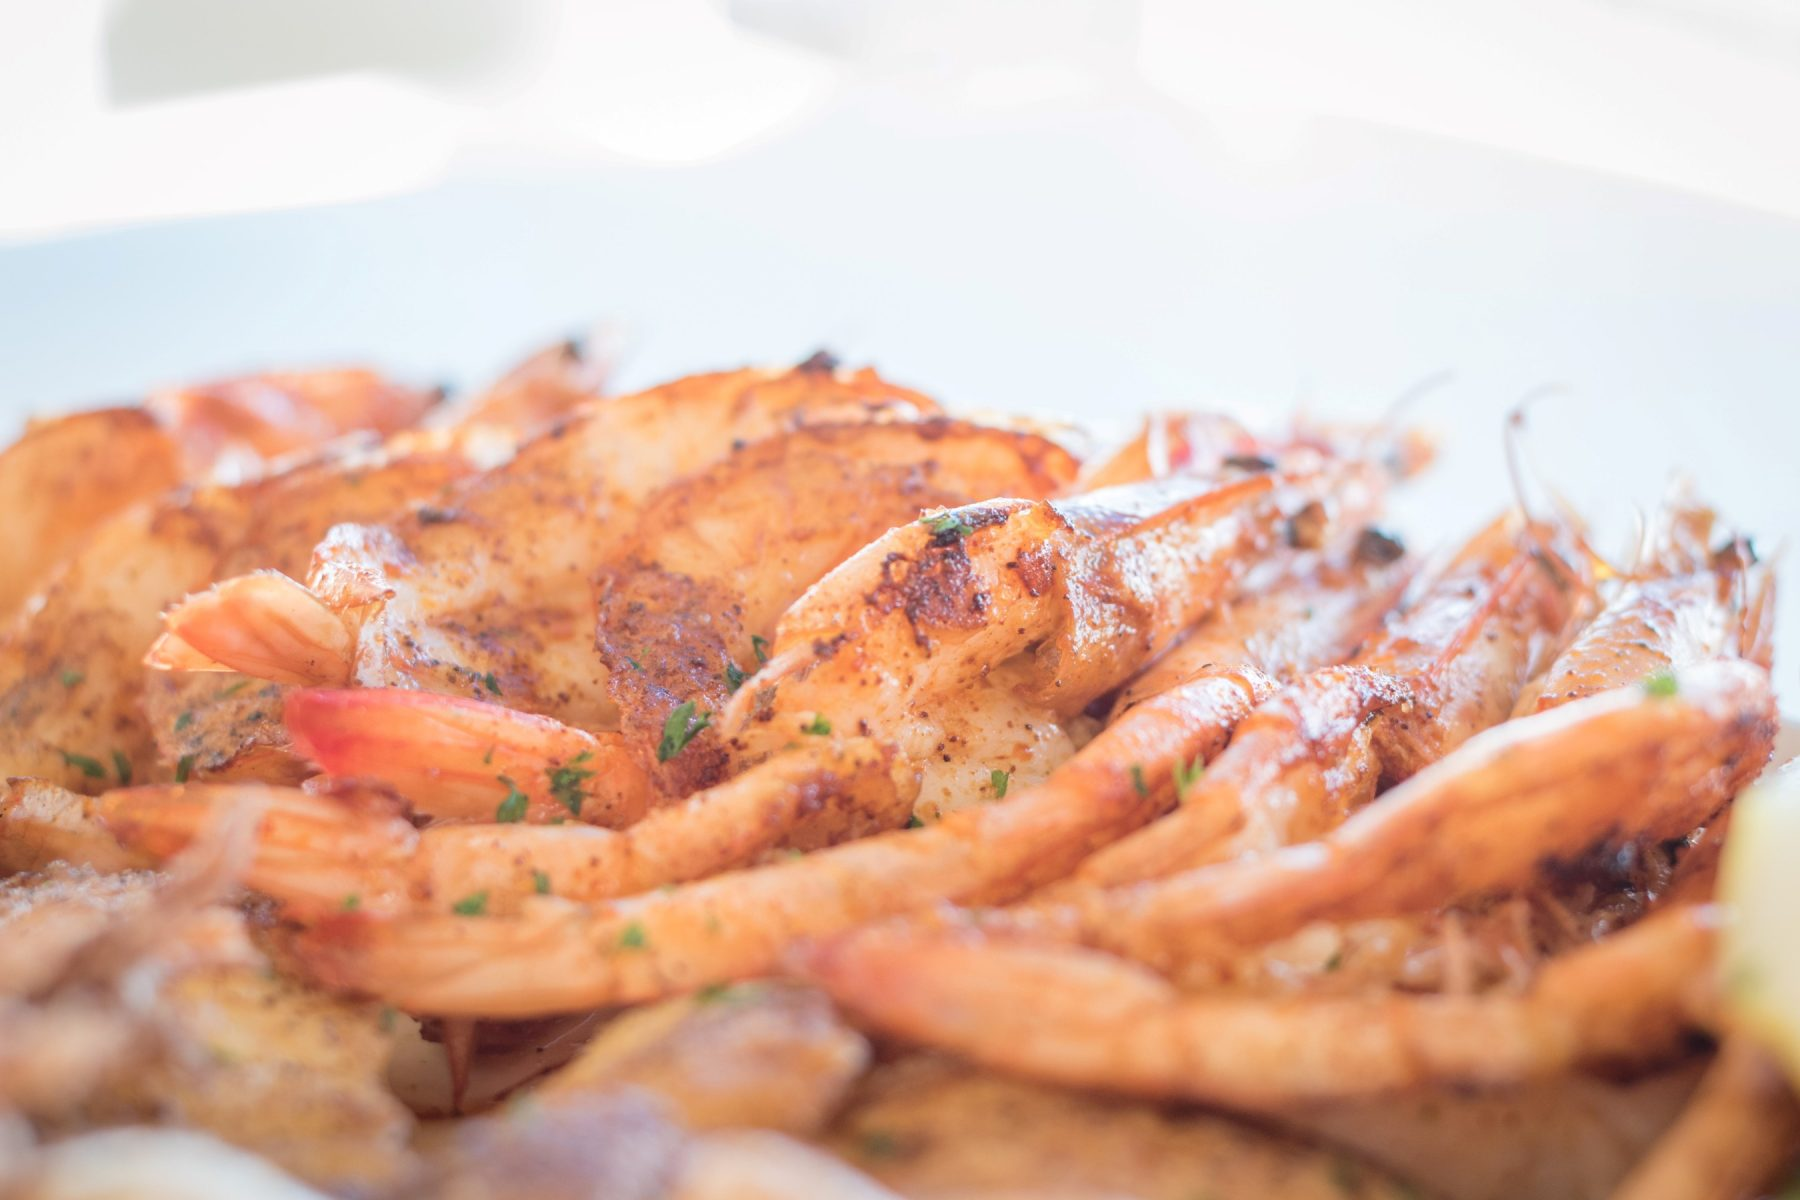 Catch 22 Beachside Grille & Bar | Get in my Belly 6